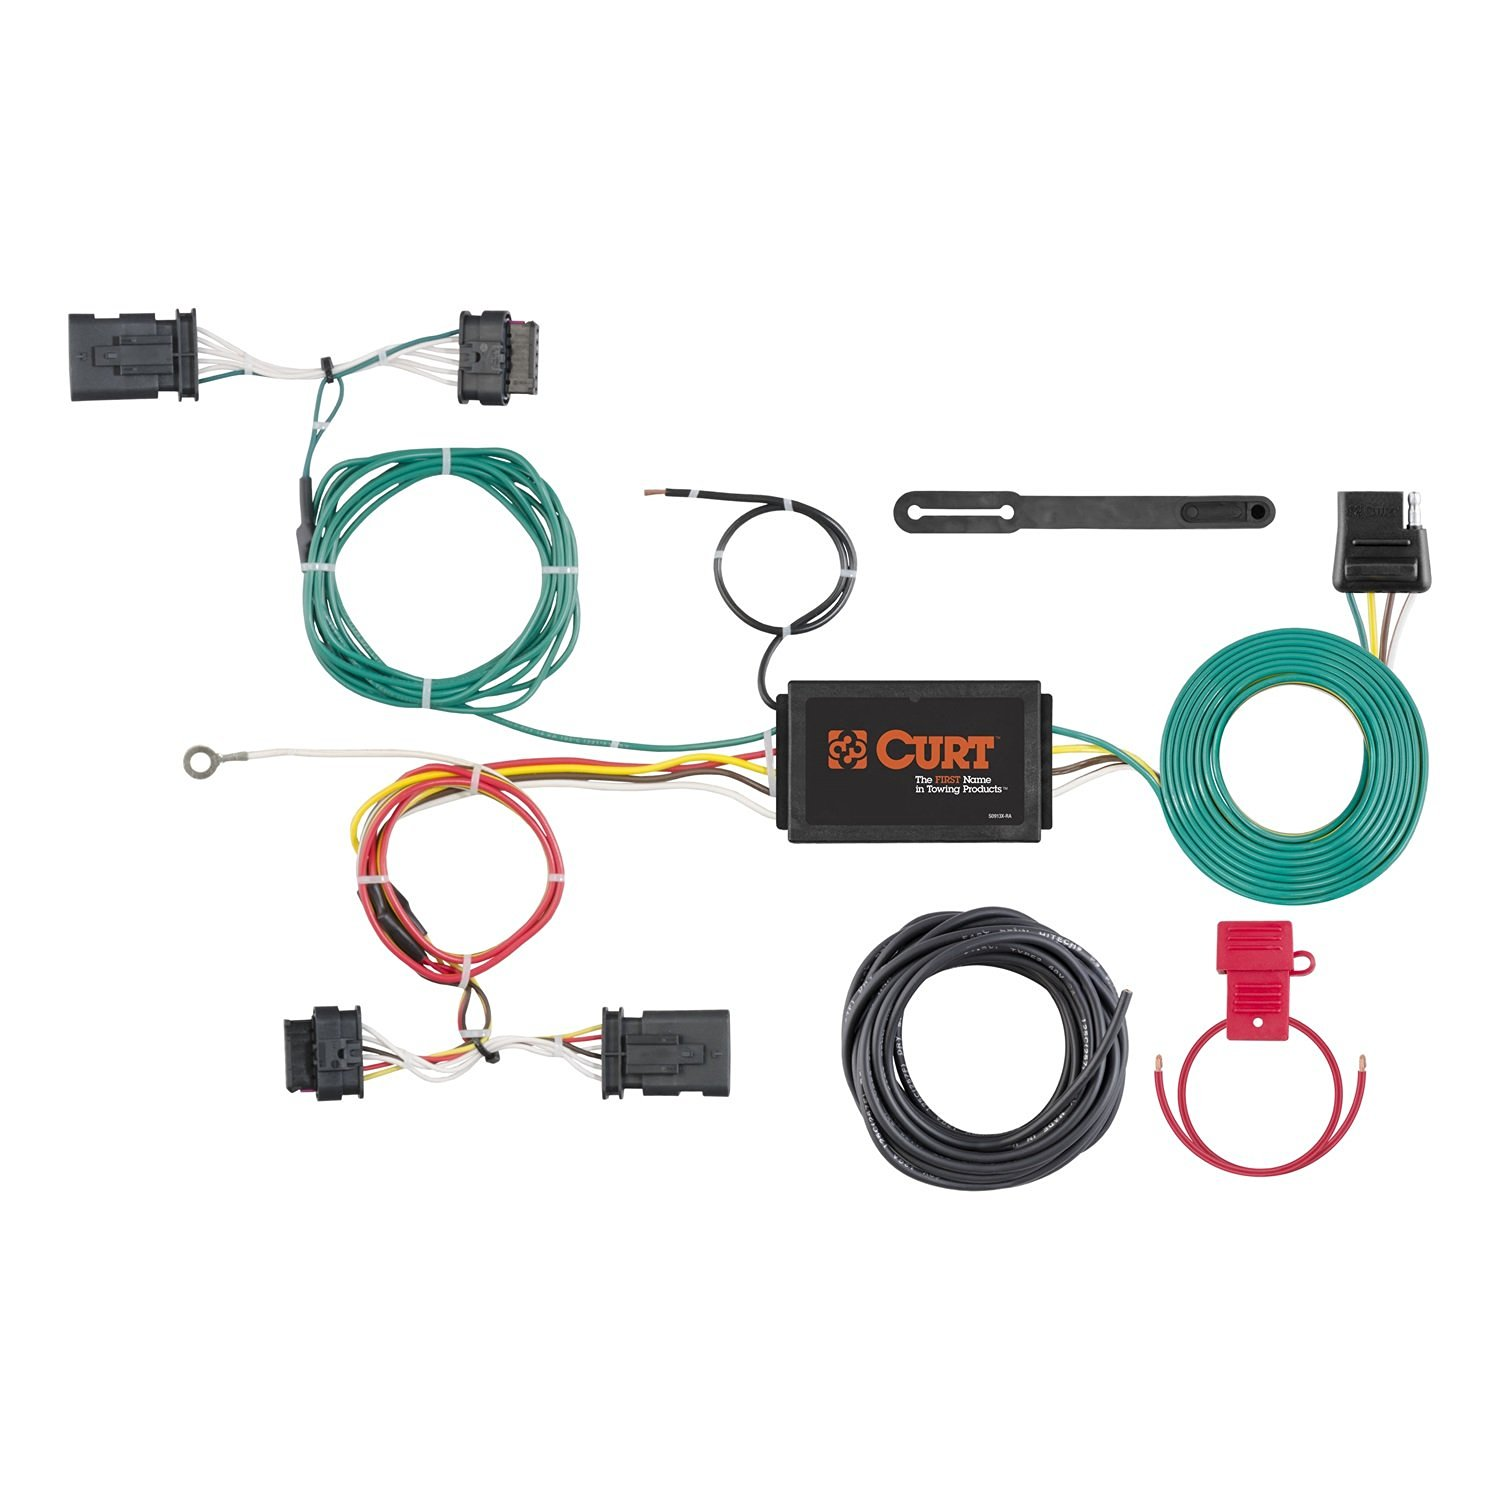 hight resolution of curt manufacturing 56308 custom vehicle to trailer wiring harness provides a 4